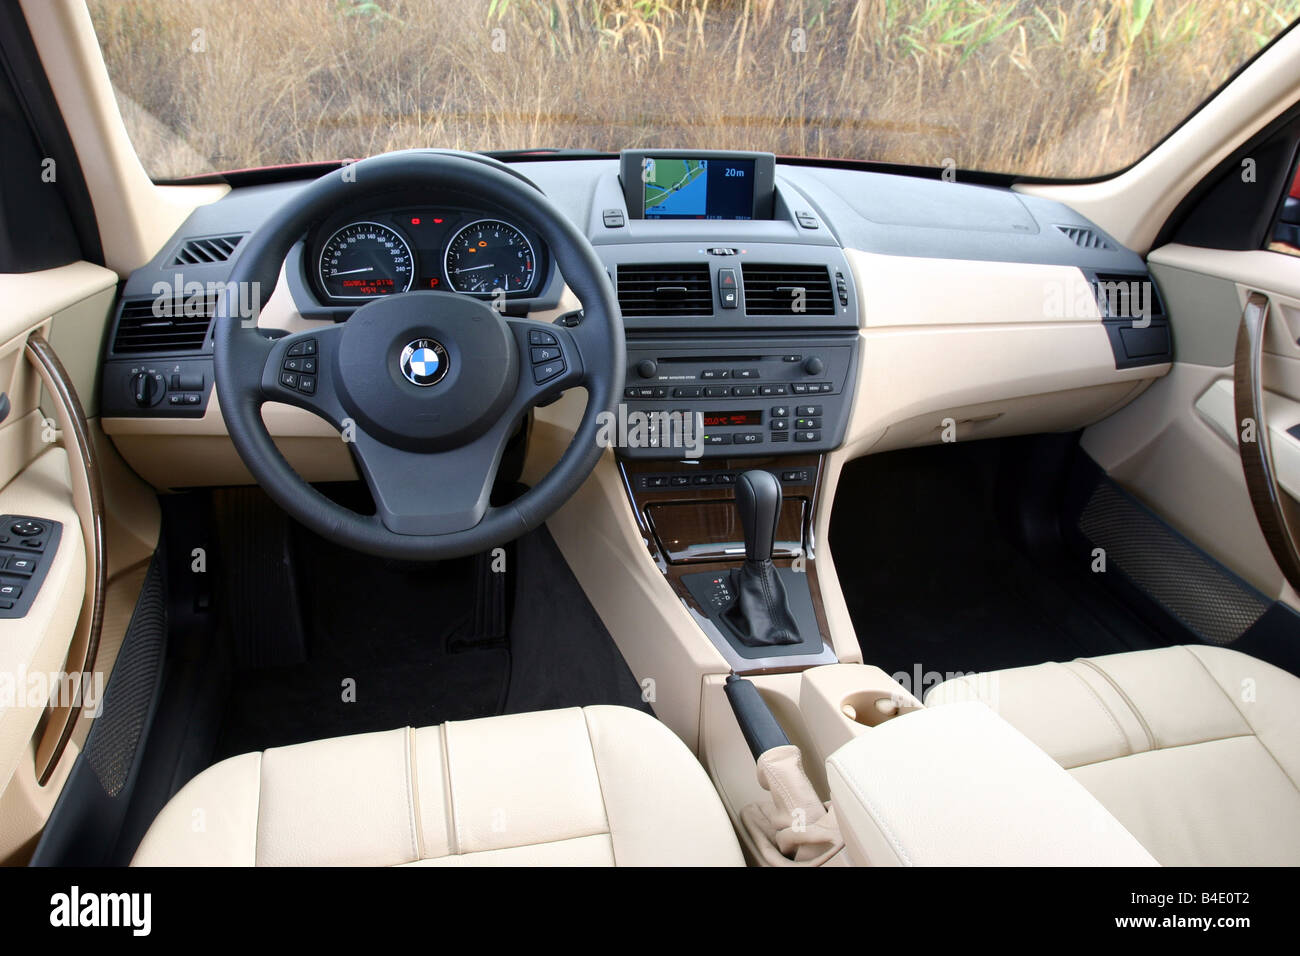 voiture bmw x3 v hicule cross country l 39 ann e de mod le 2003 rouge fghds conduite debout. Black Bedroom Furniture Sets. Home Design Ideas